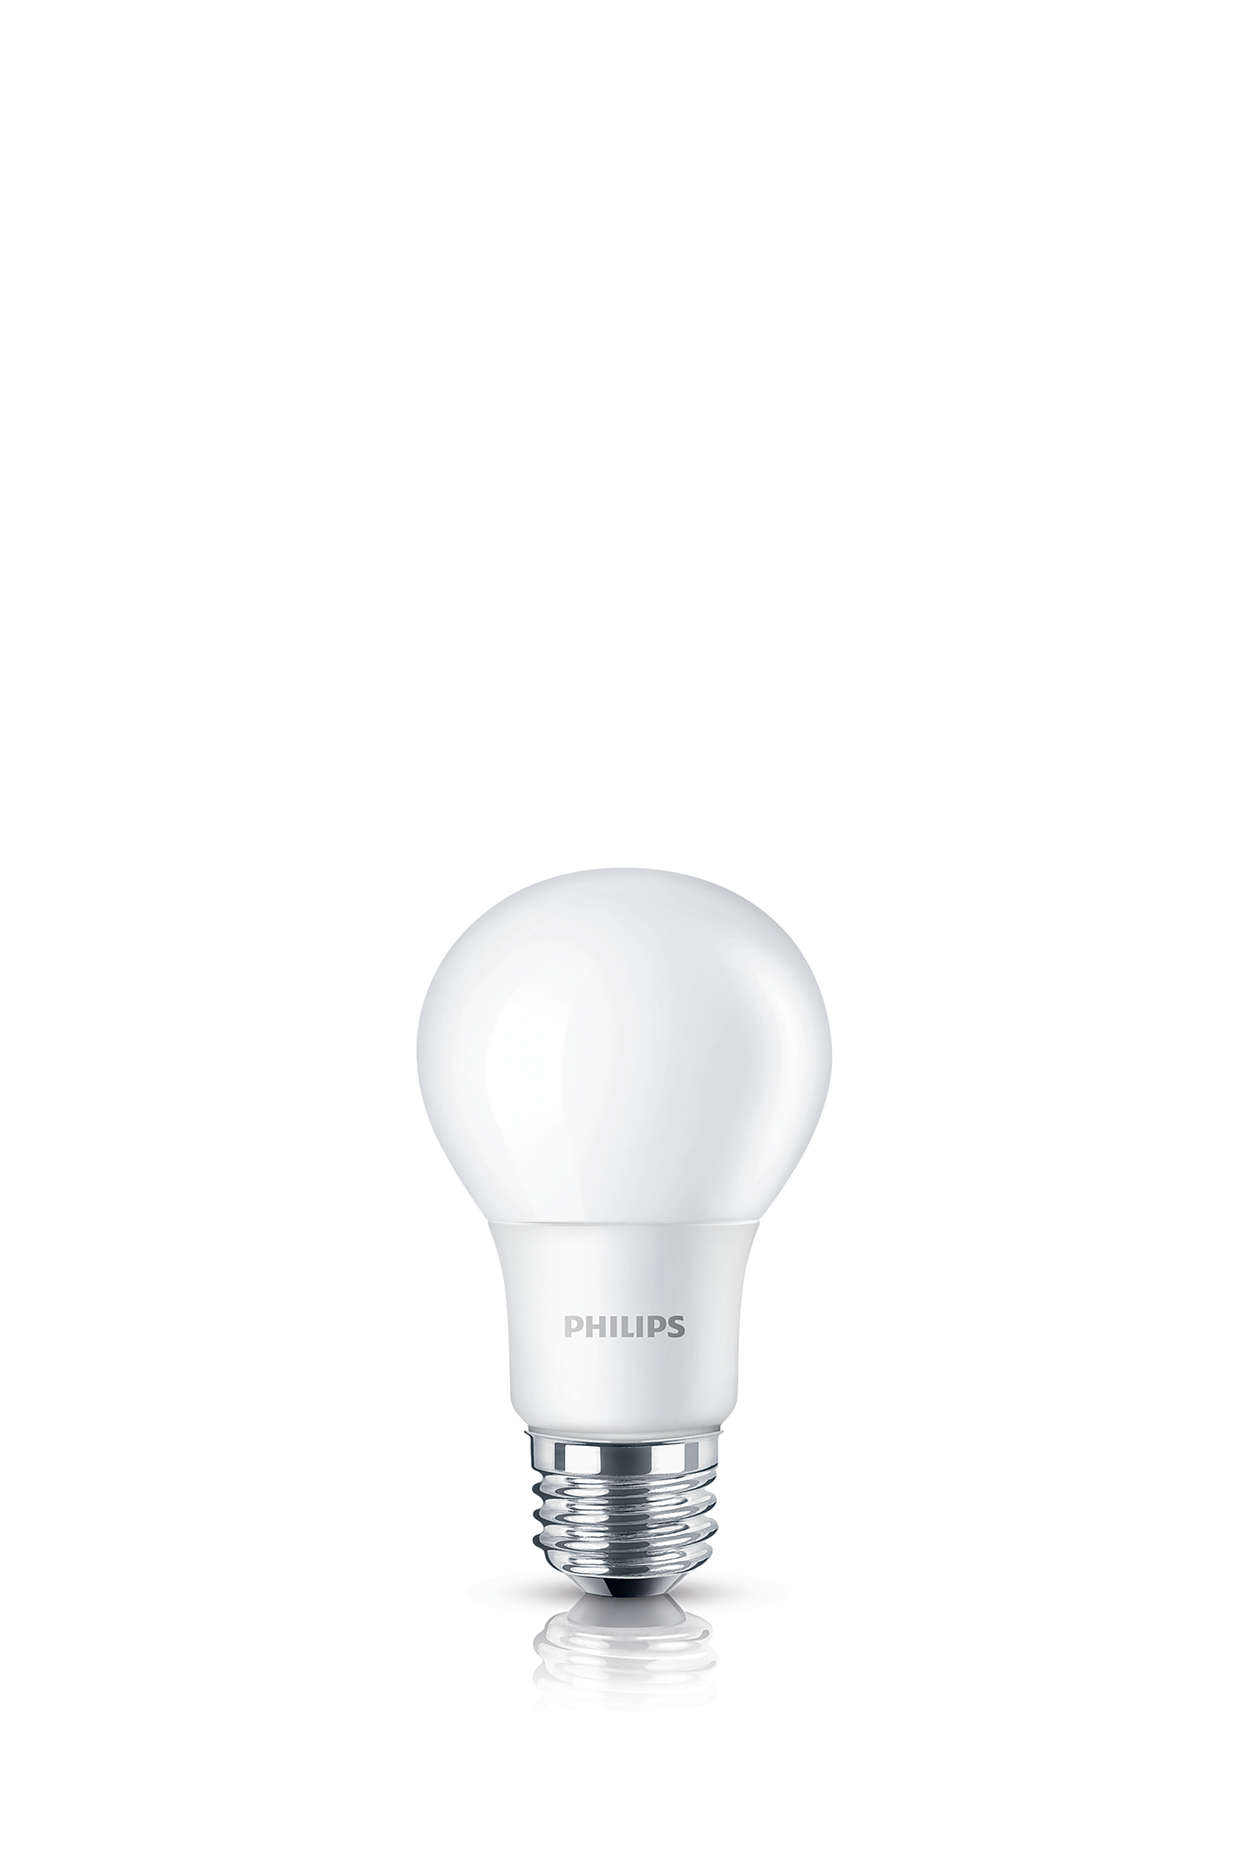 shape to philips ims simple way your light a beautify home ca p led bulbs can c en large wid